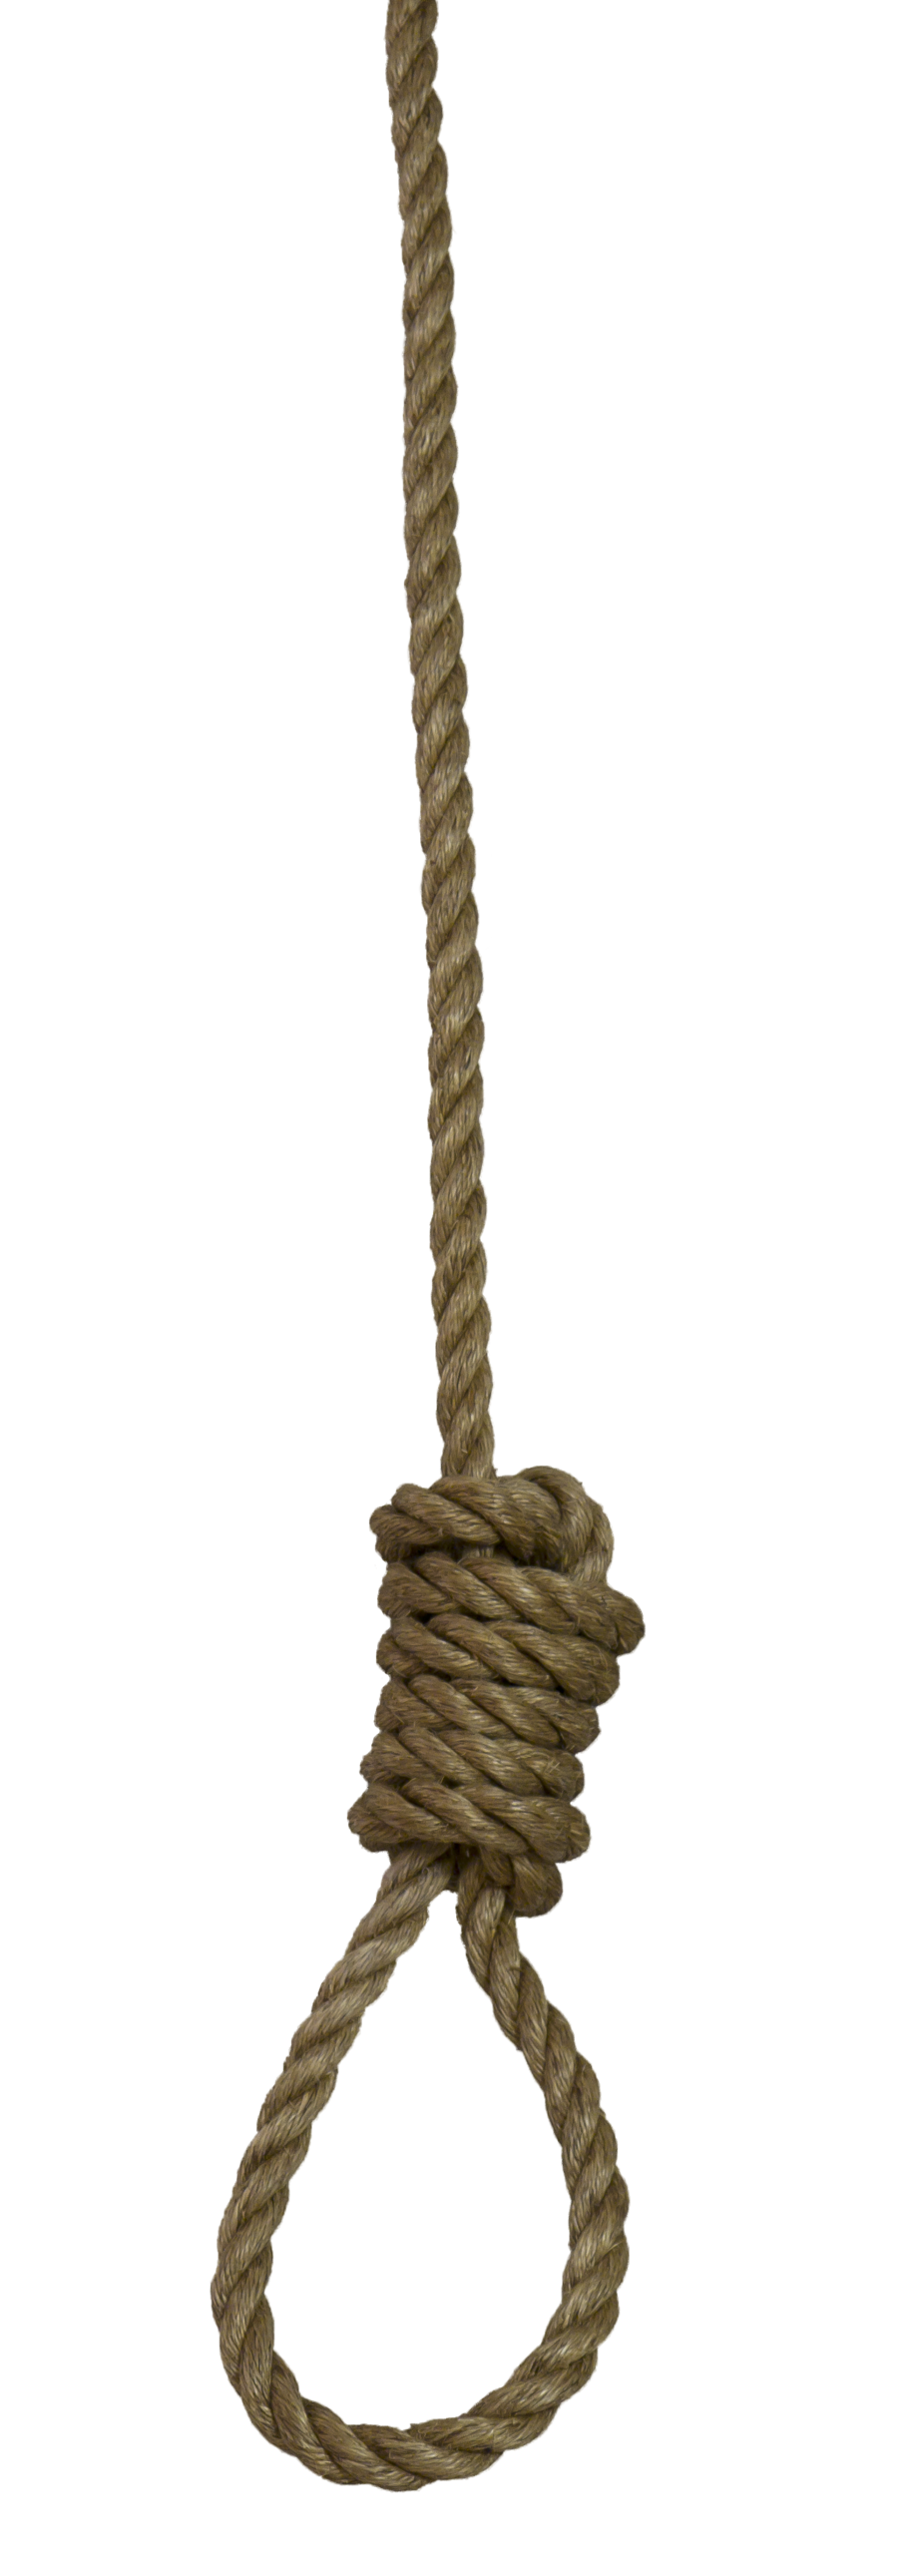 Rope Png Download